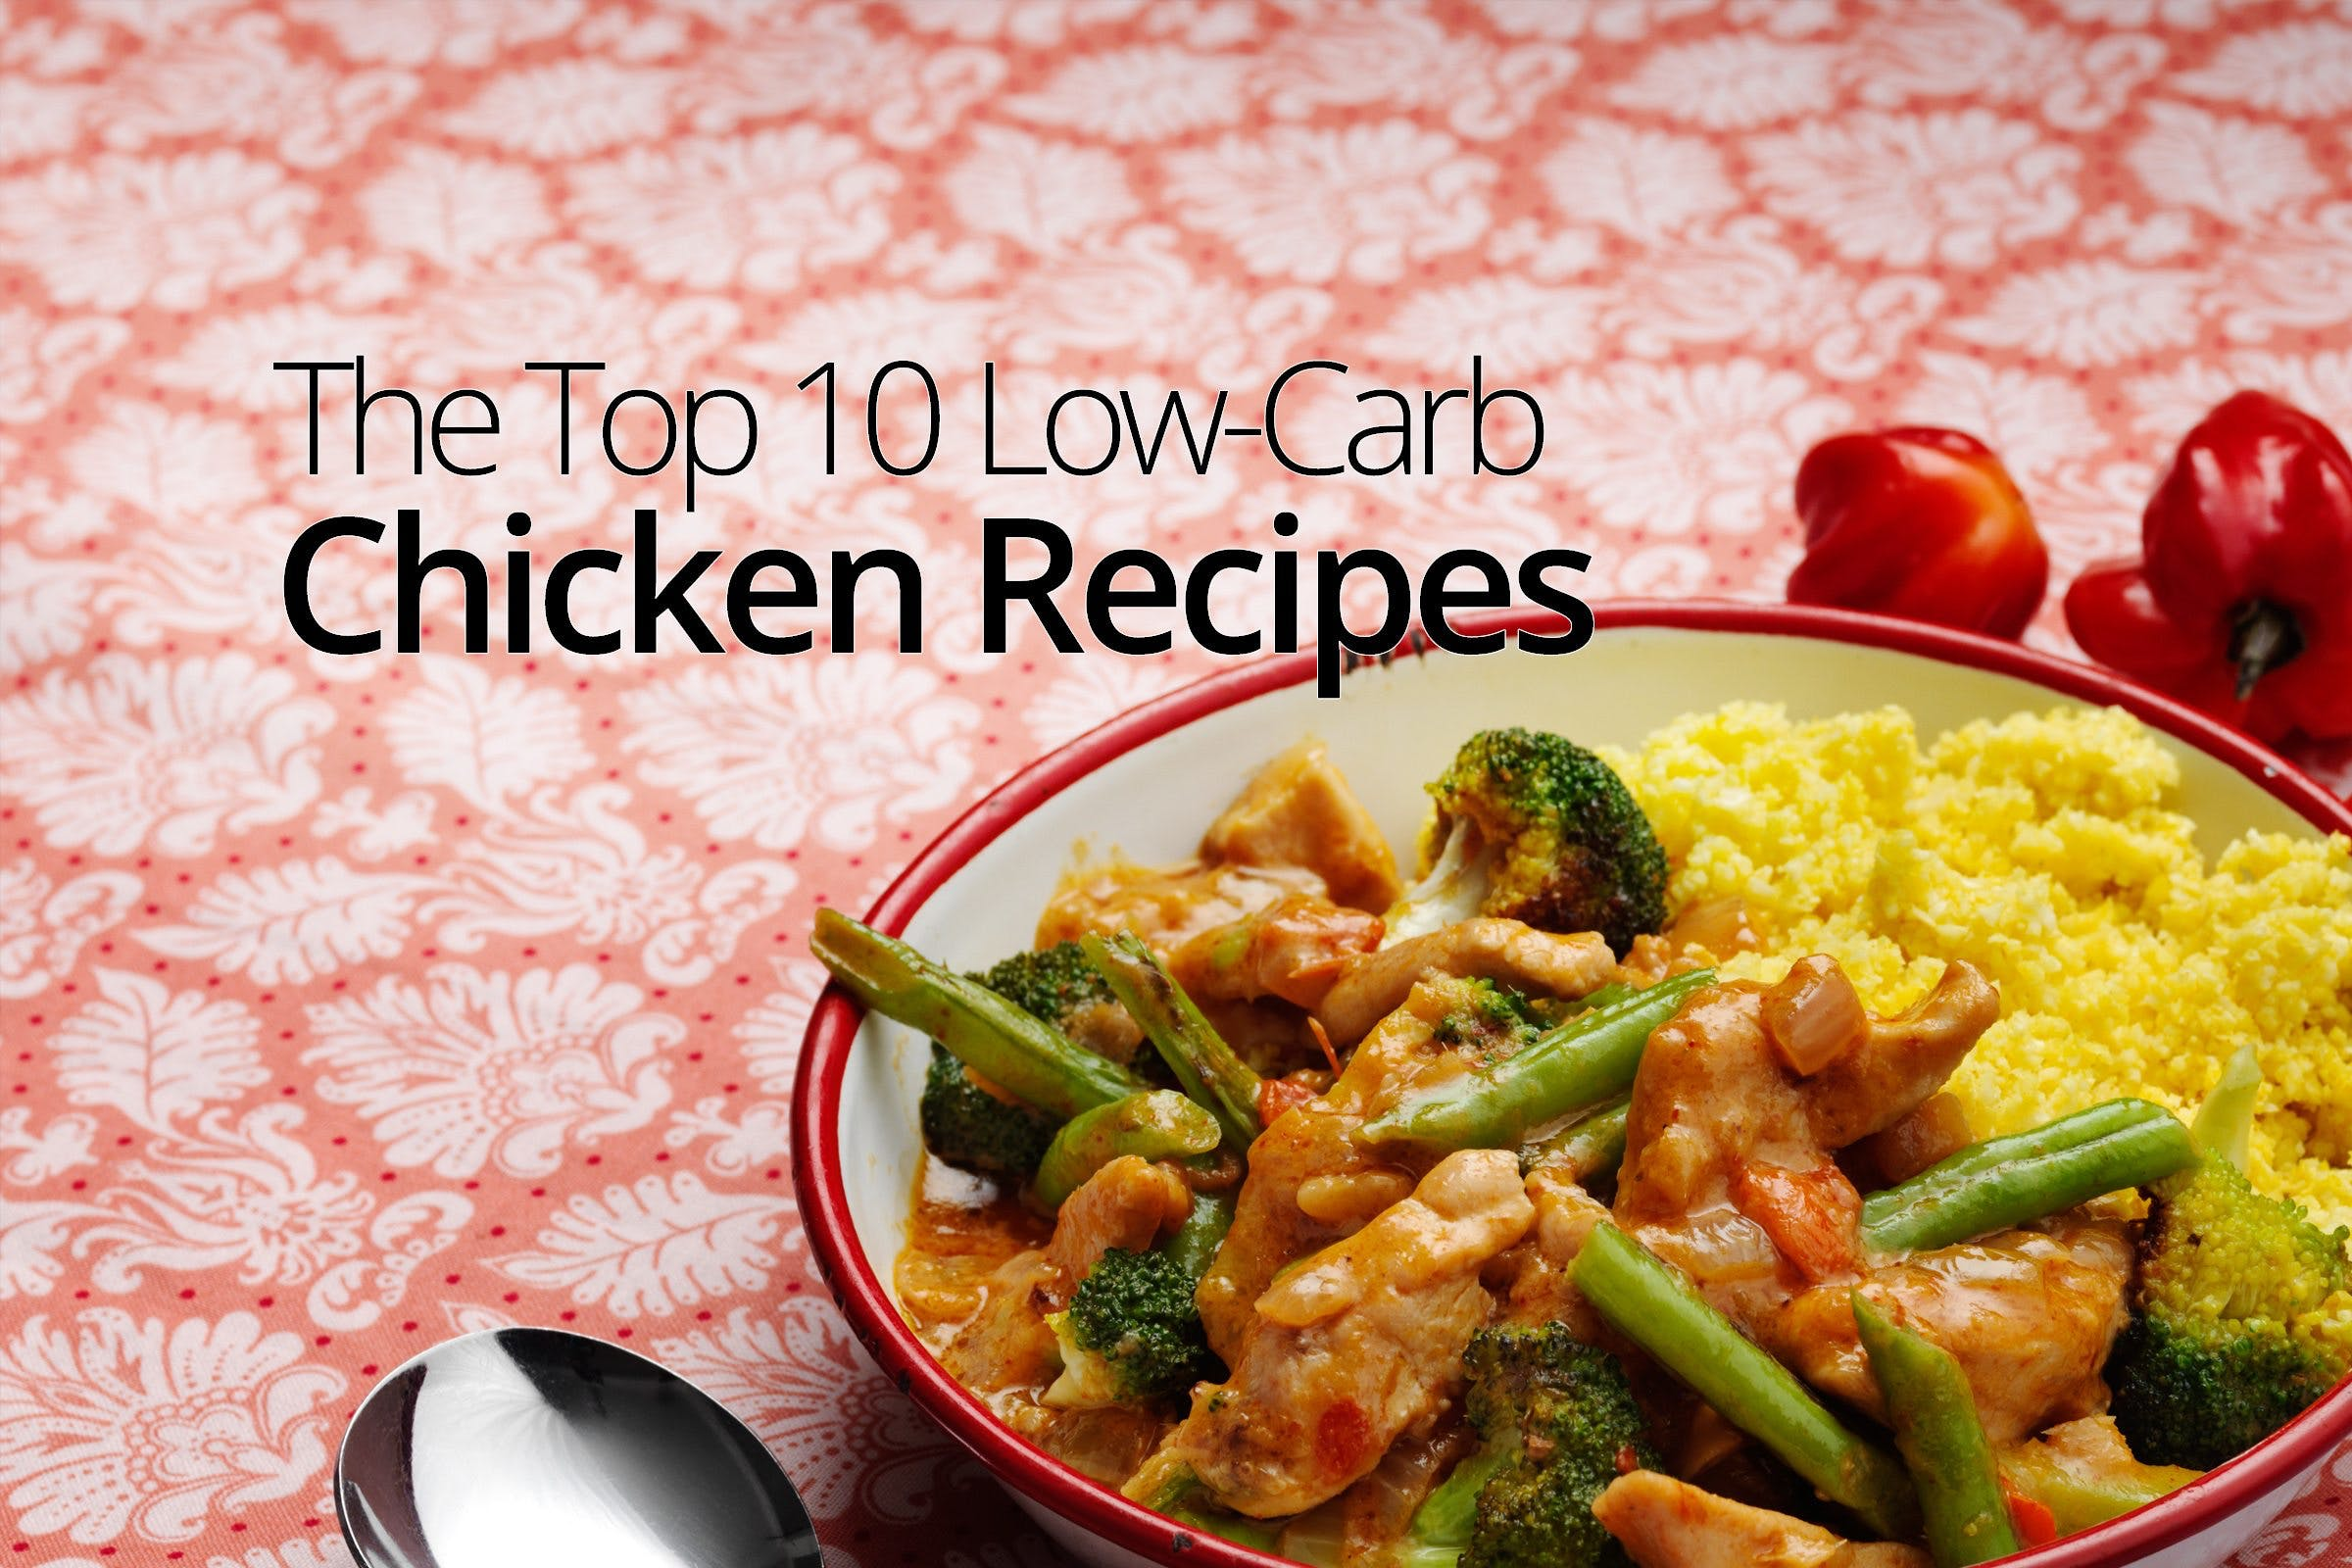 The 10 best low-carb chicken recipes